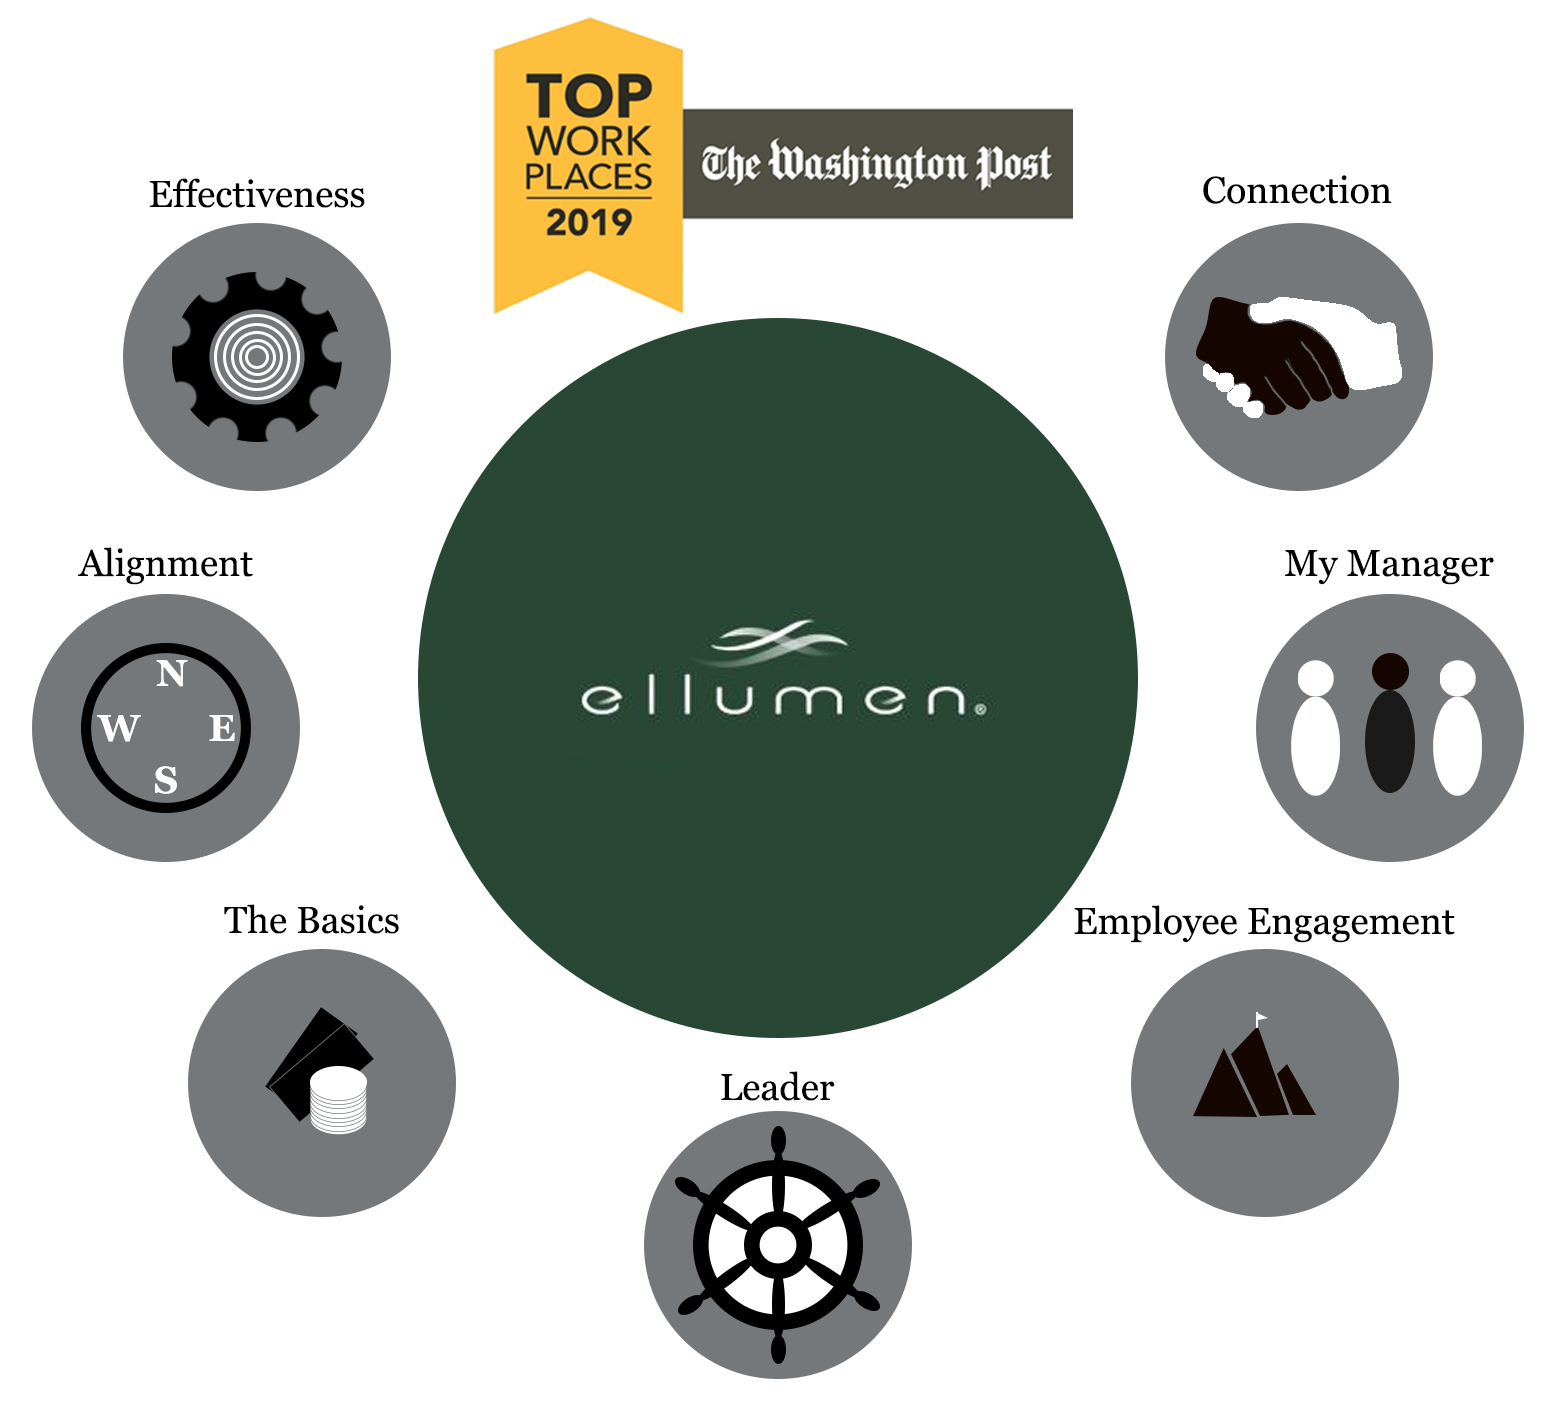 Ellumen top workplaces graphic